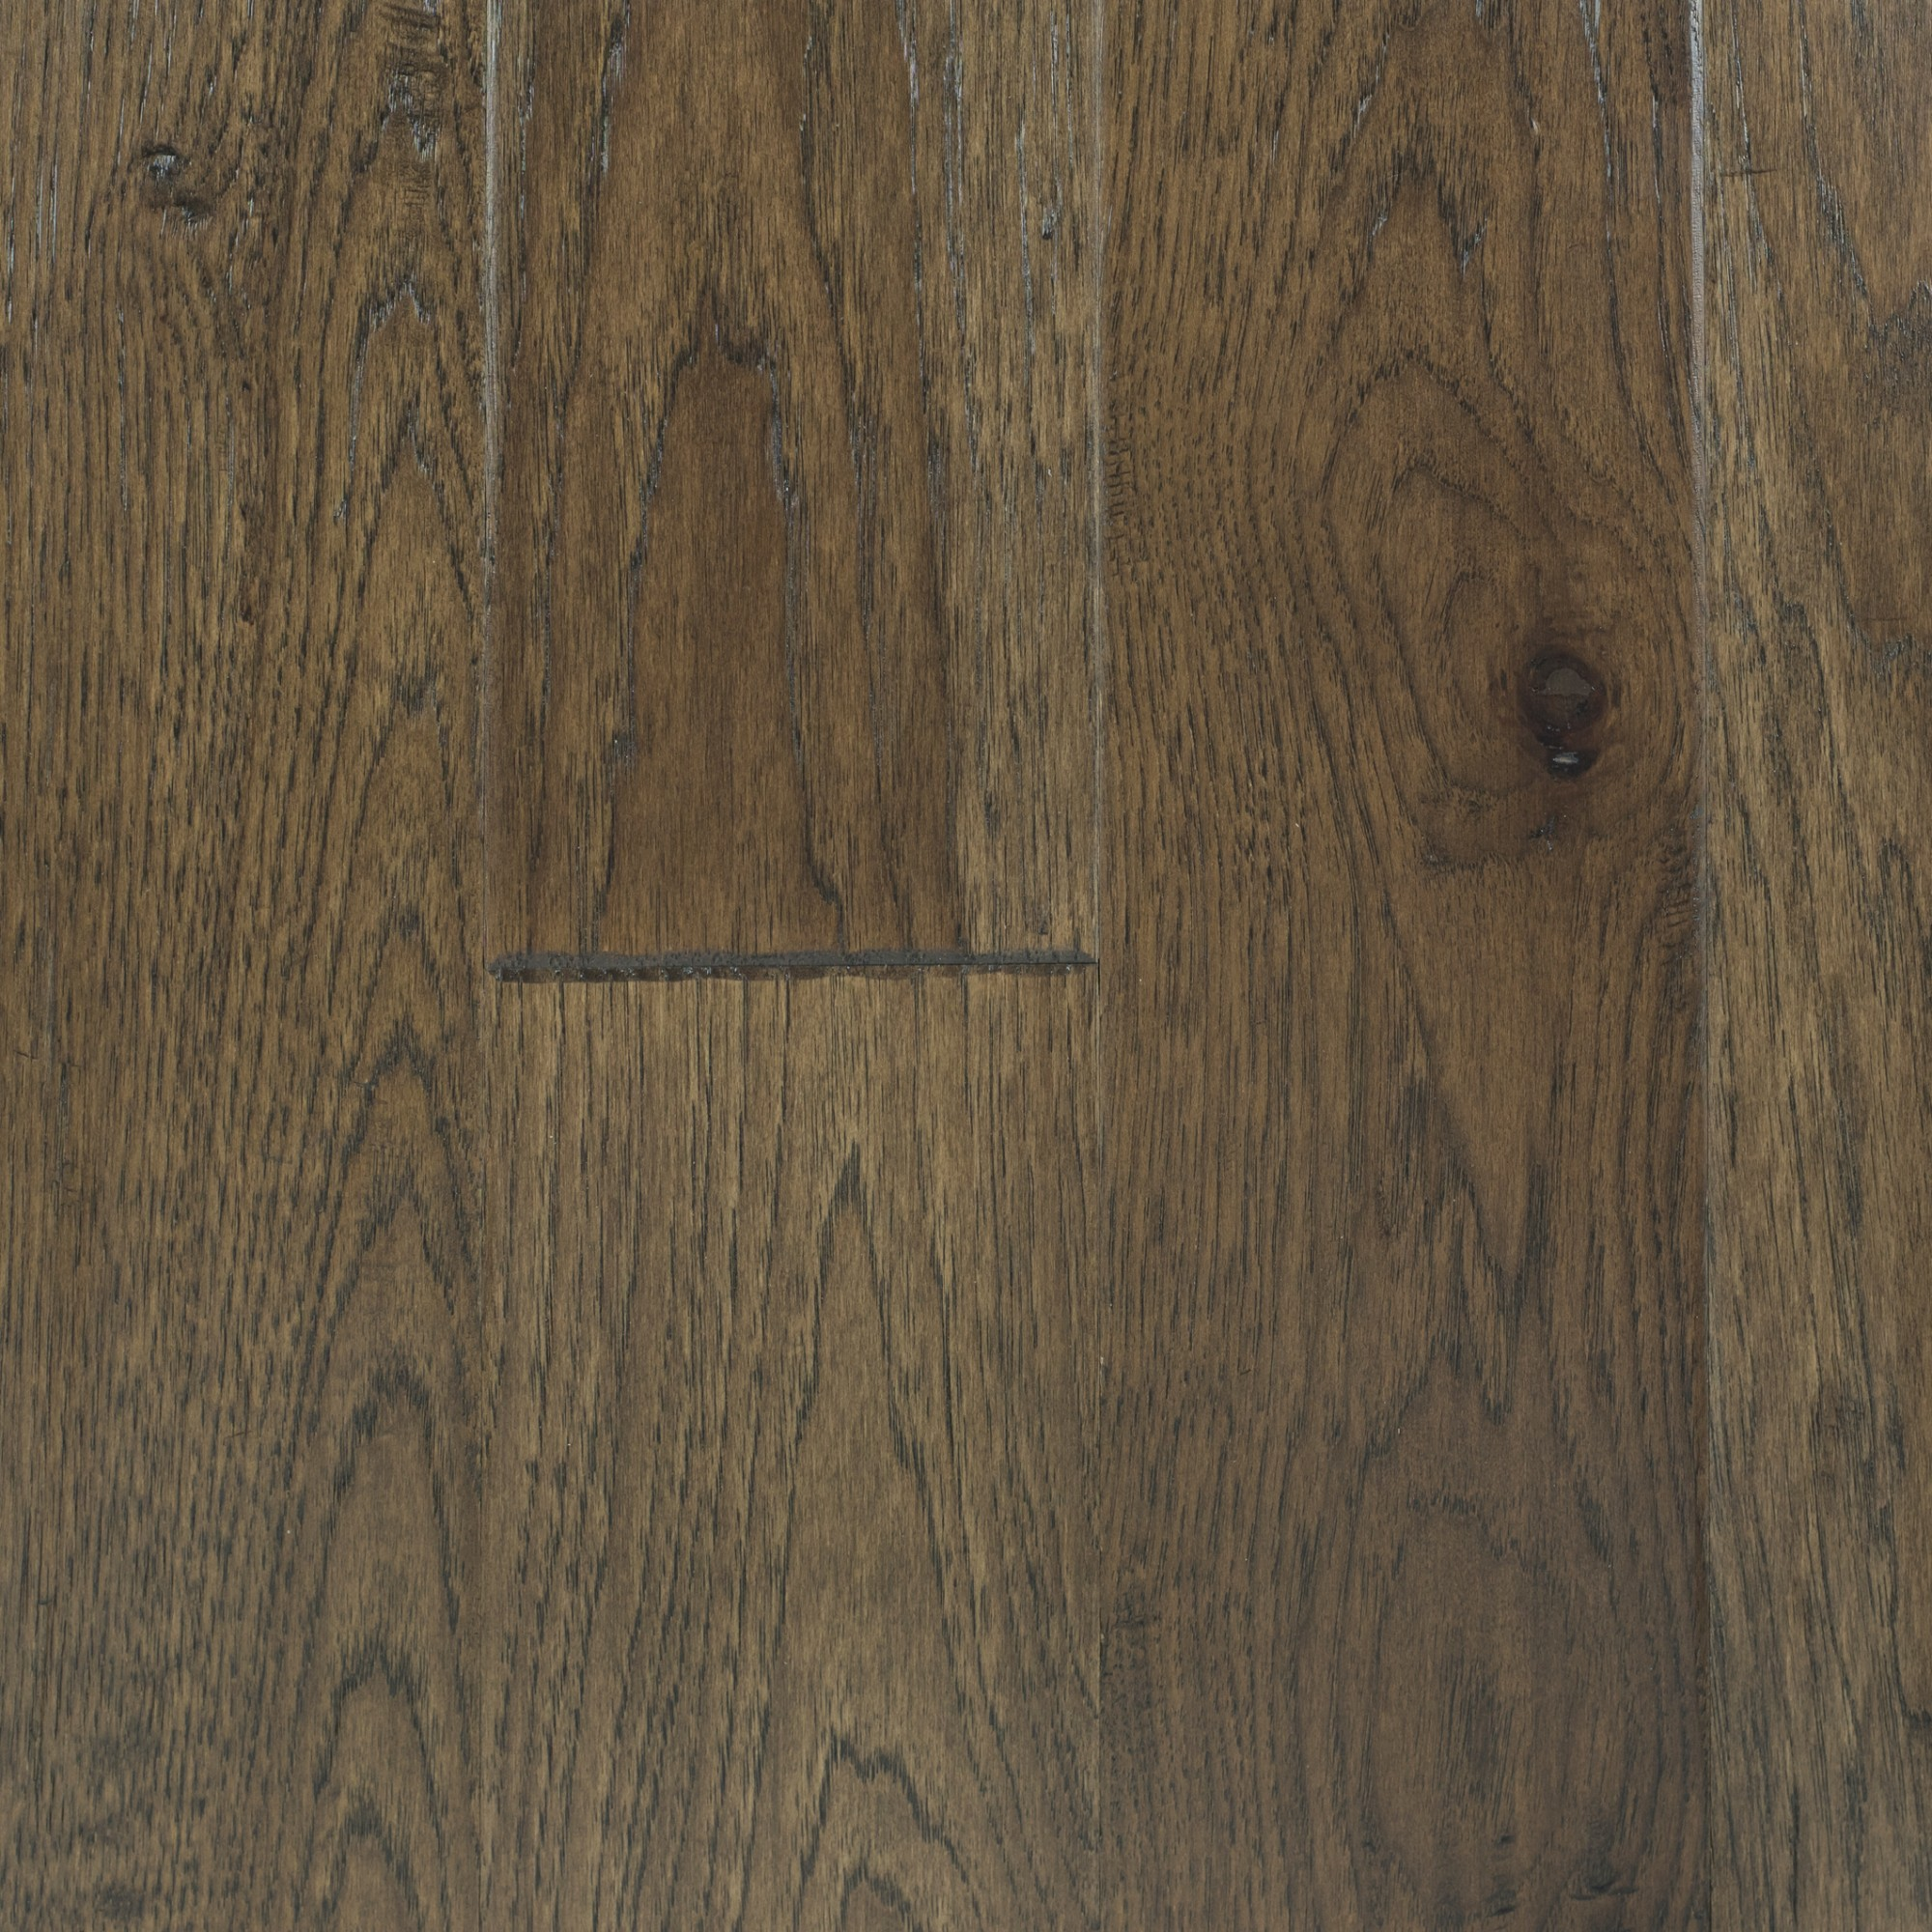 Hand Scraped Hickory Nile Vintage Hardwood Flooring